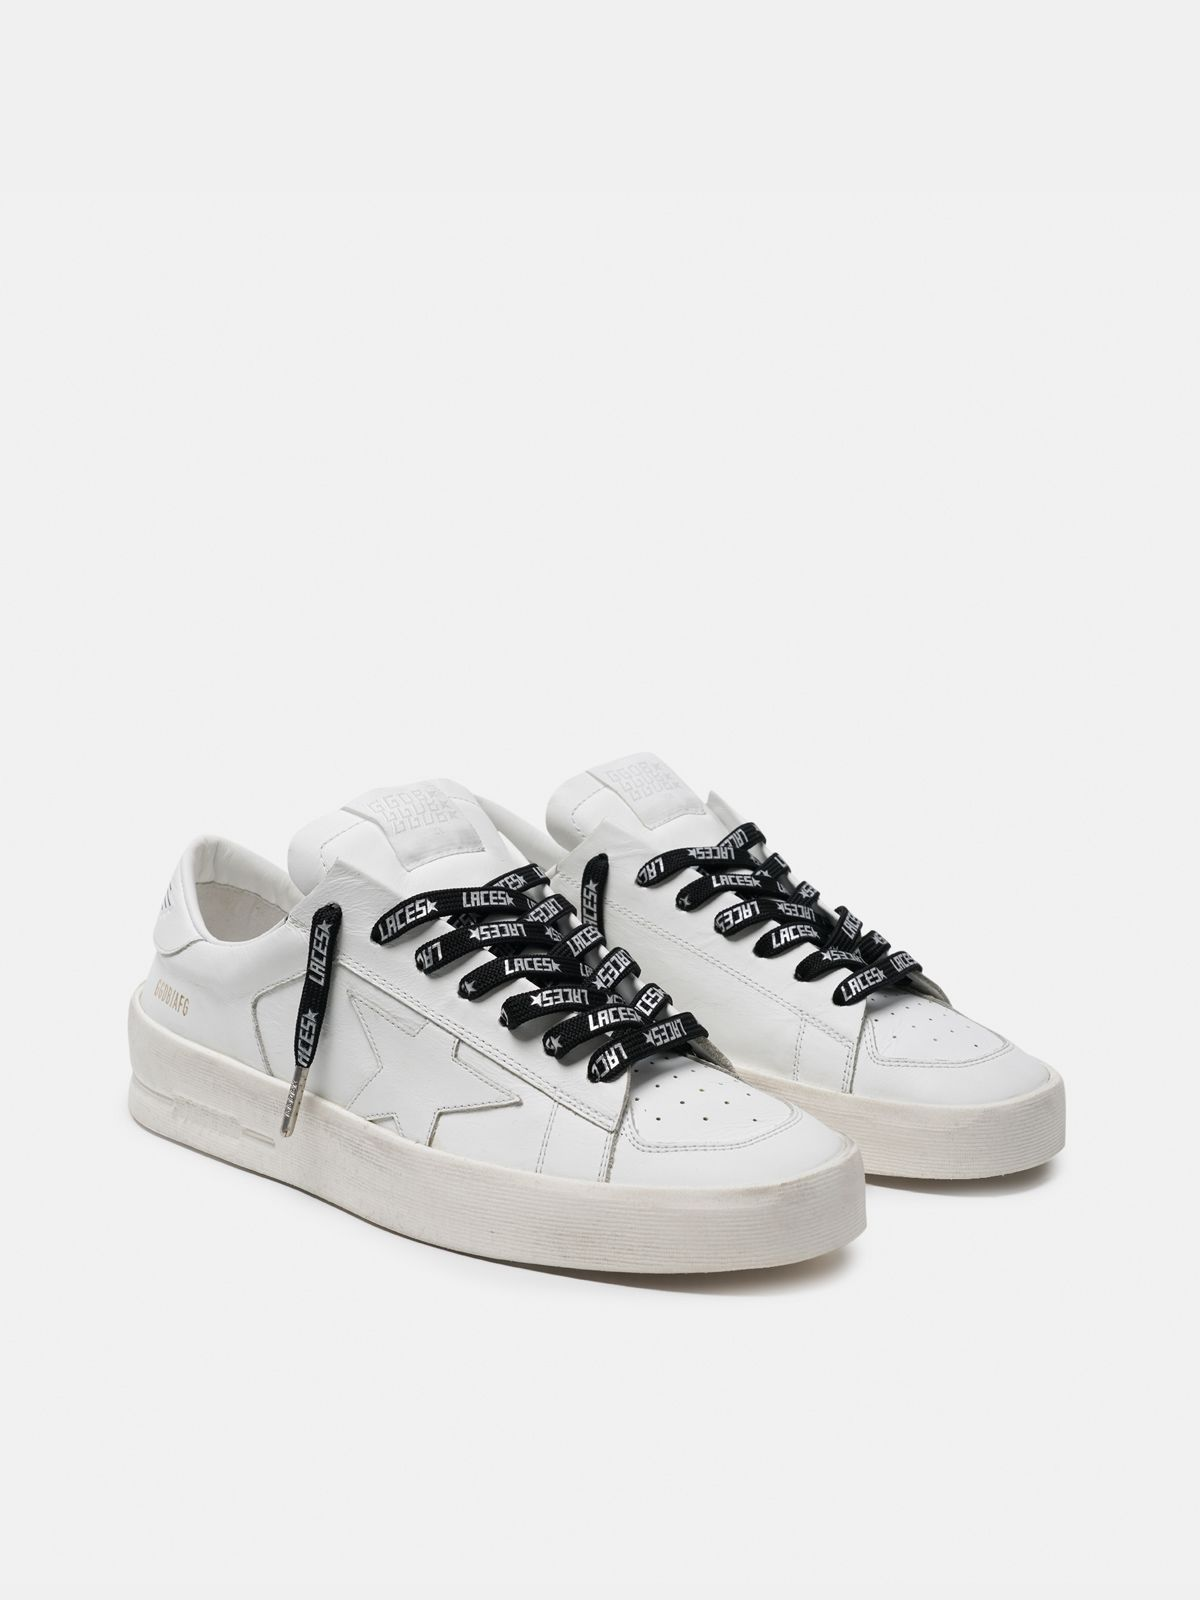 Golden Goose - Women's black laces with silver laces print in